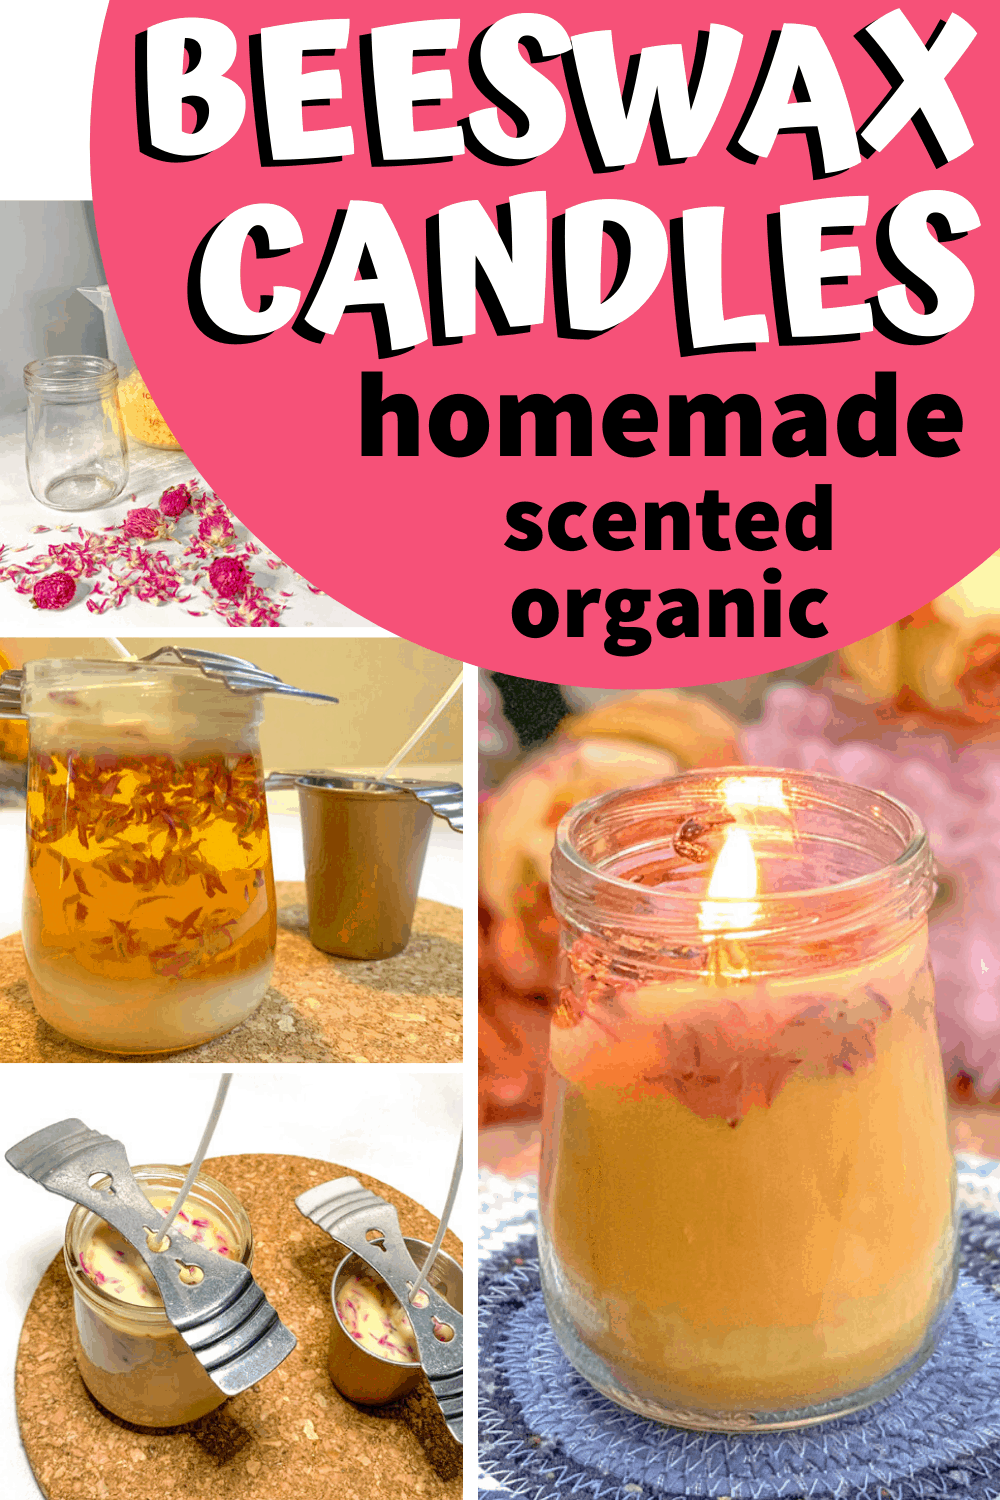 how to make beeswax candles from scratch